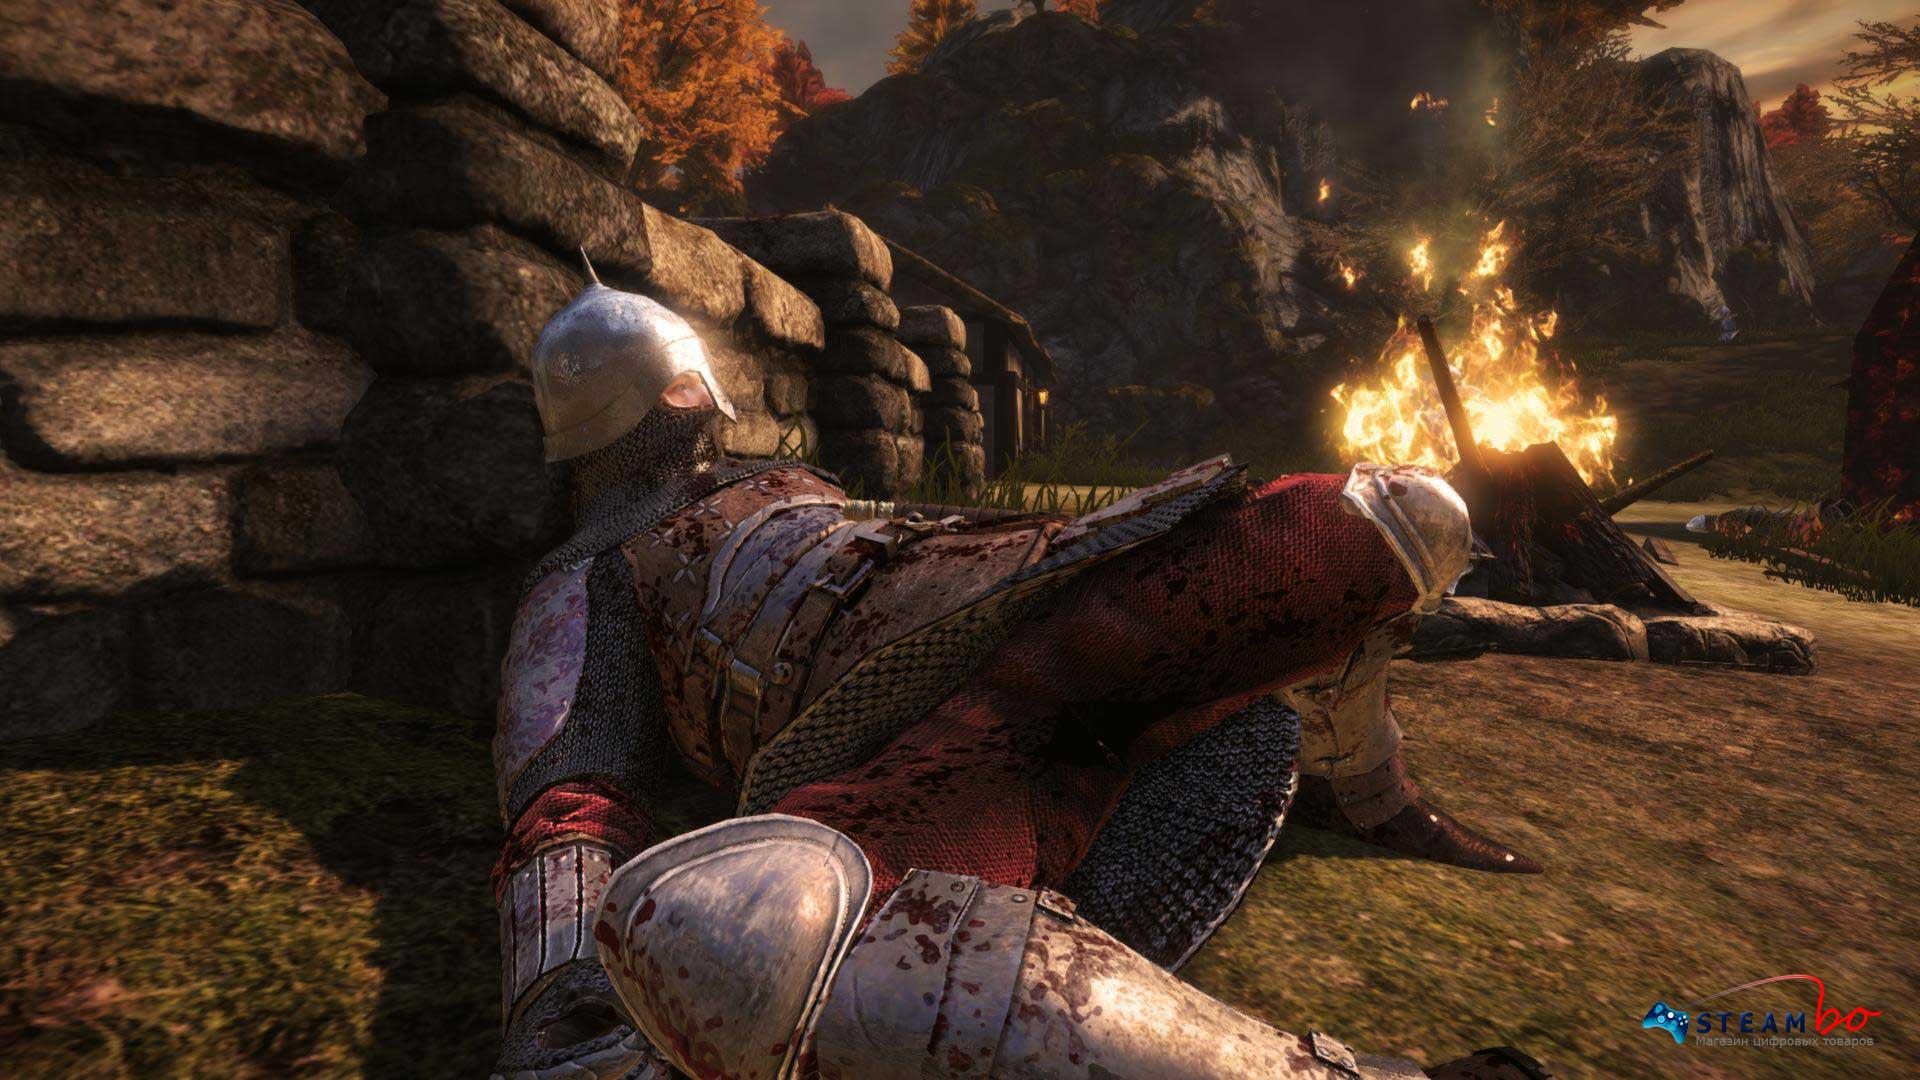 Chivalry: Medieval Warfare RU/CIS (Steam Gift/Key)